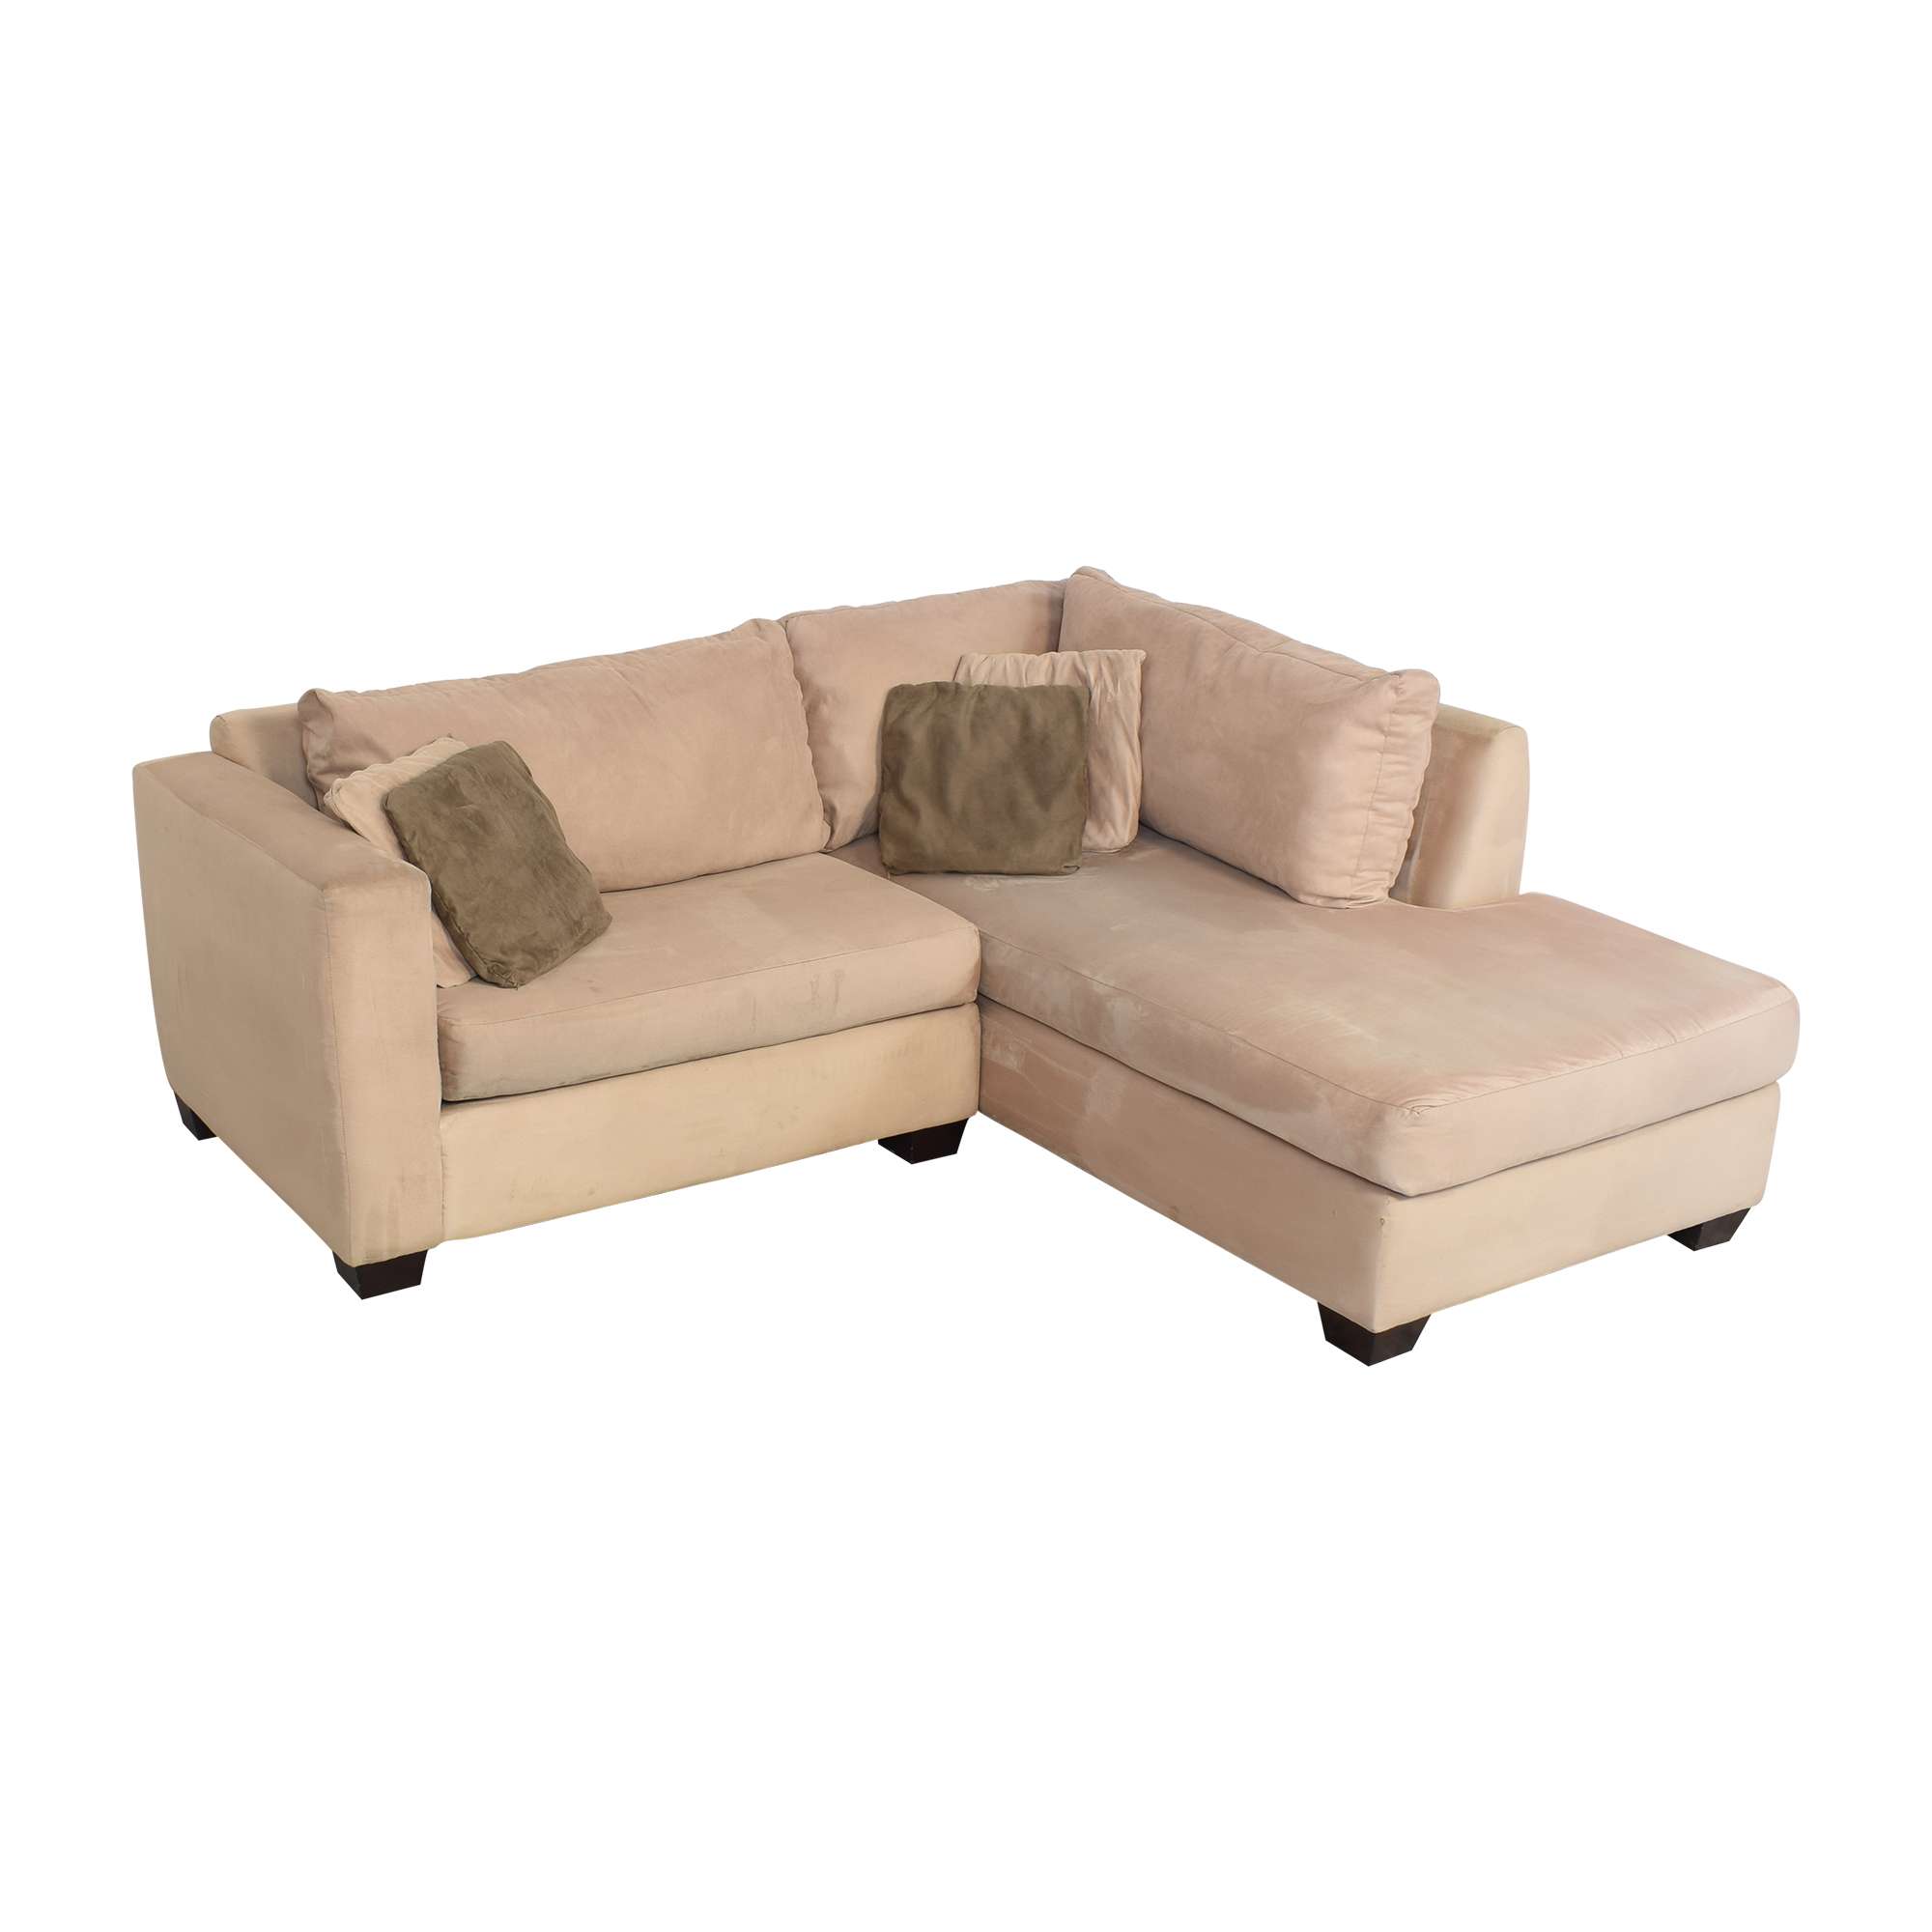 51 off two piece chaise sectional sofa sofas